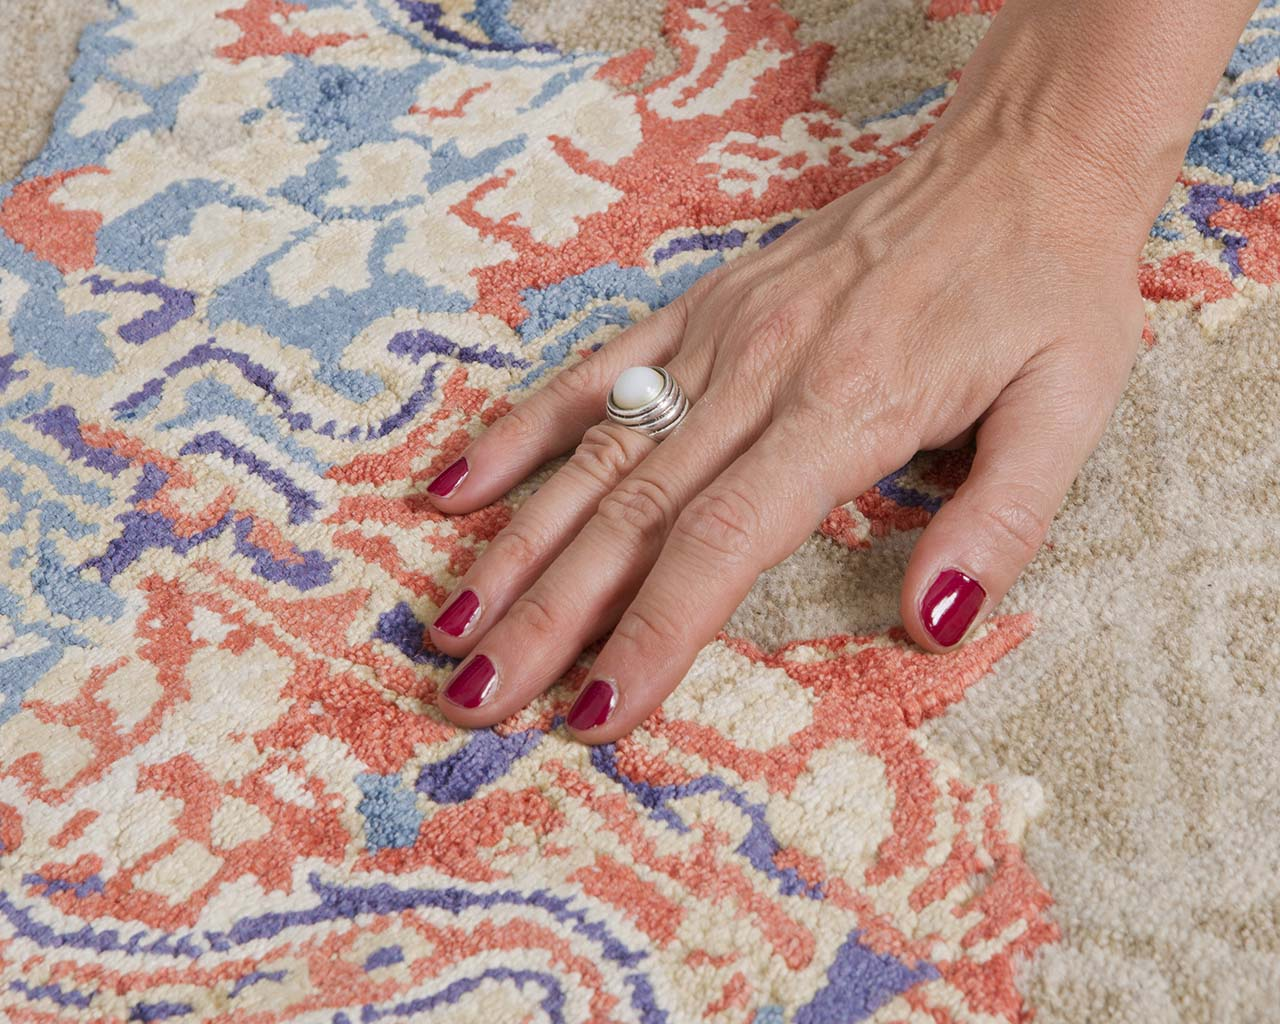 crimson fresh hand with red nail polish persian style area rugs